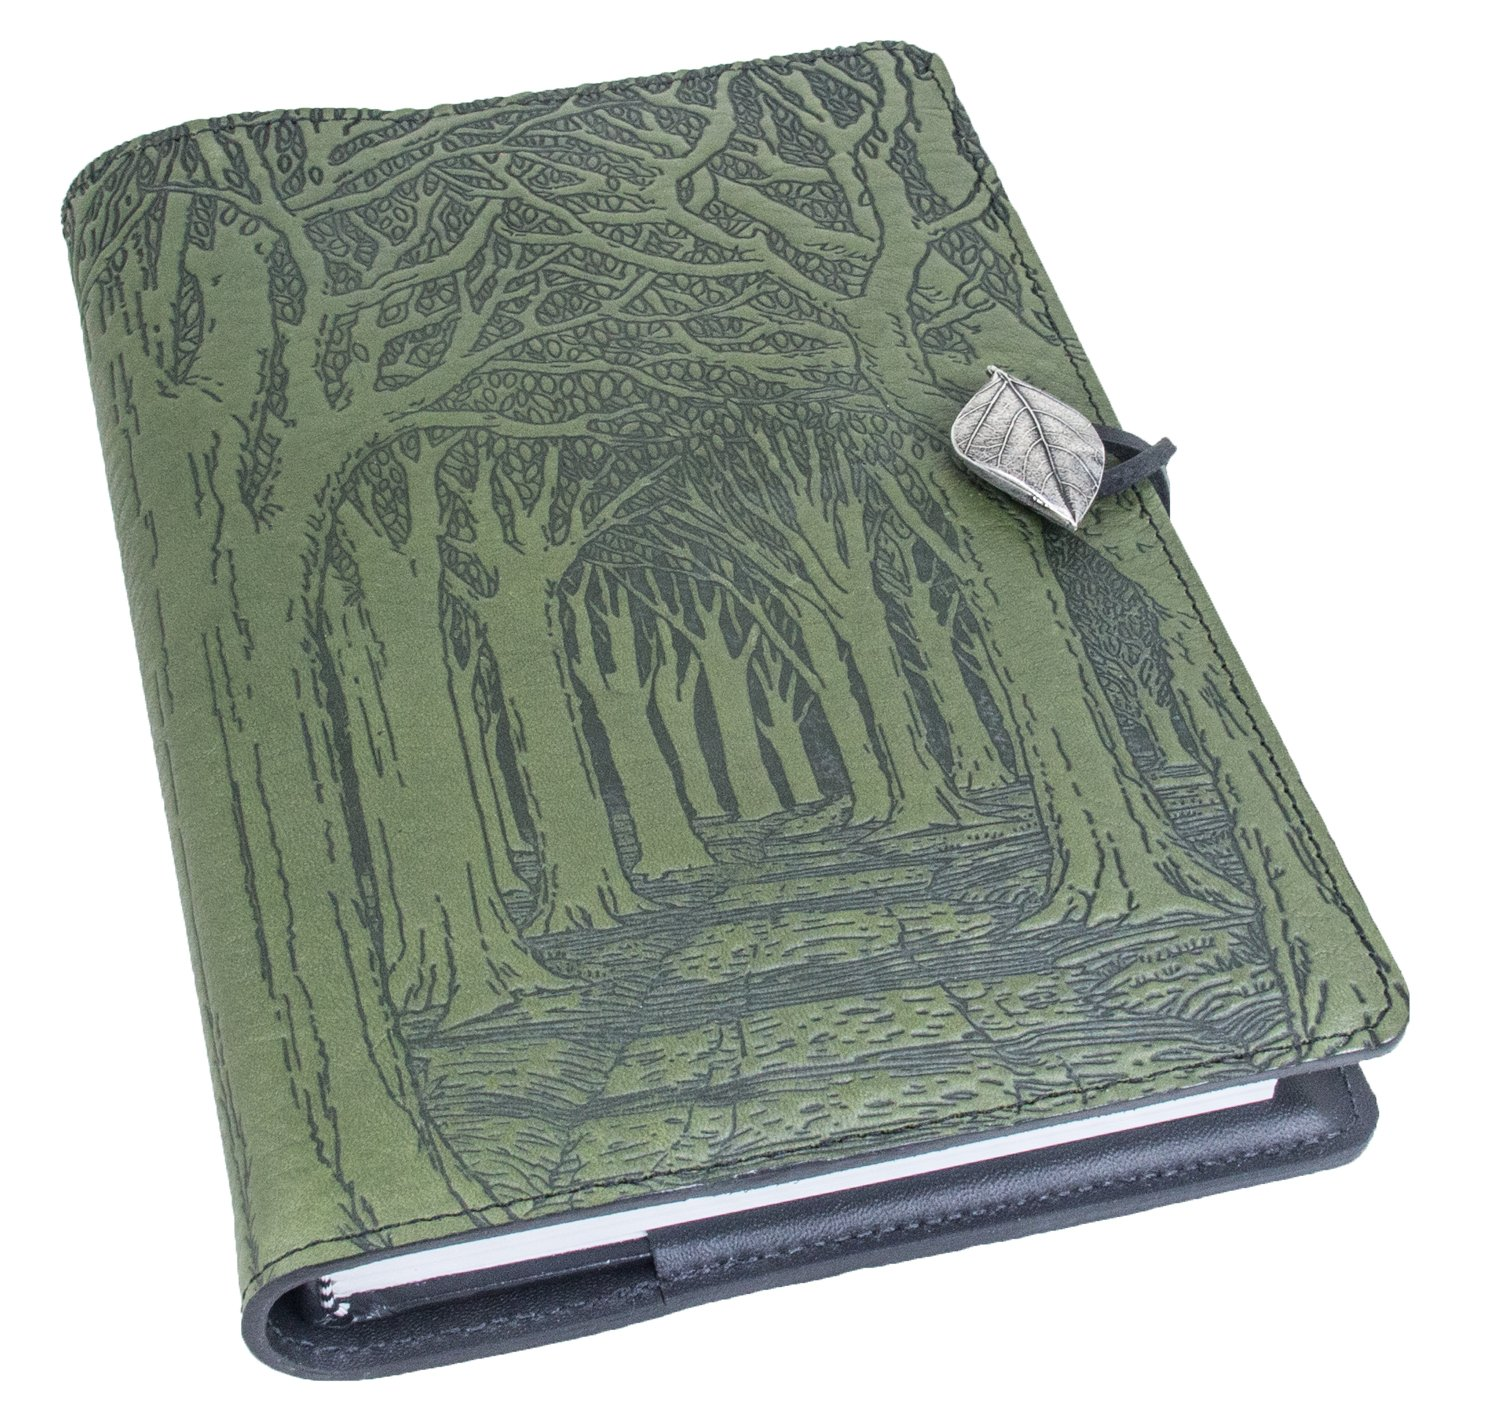 Genuine Leather Refillable Journal Cover with a Hardbound Blank Insert, 6x9 Inches, Avenue of Trees, Fern Color with Pewter Button, Made in The USA by Oberon Design